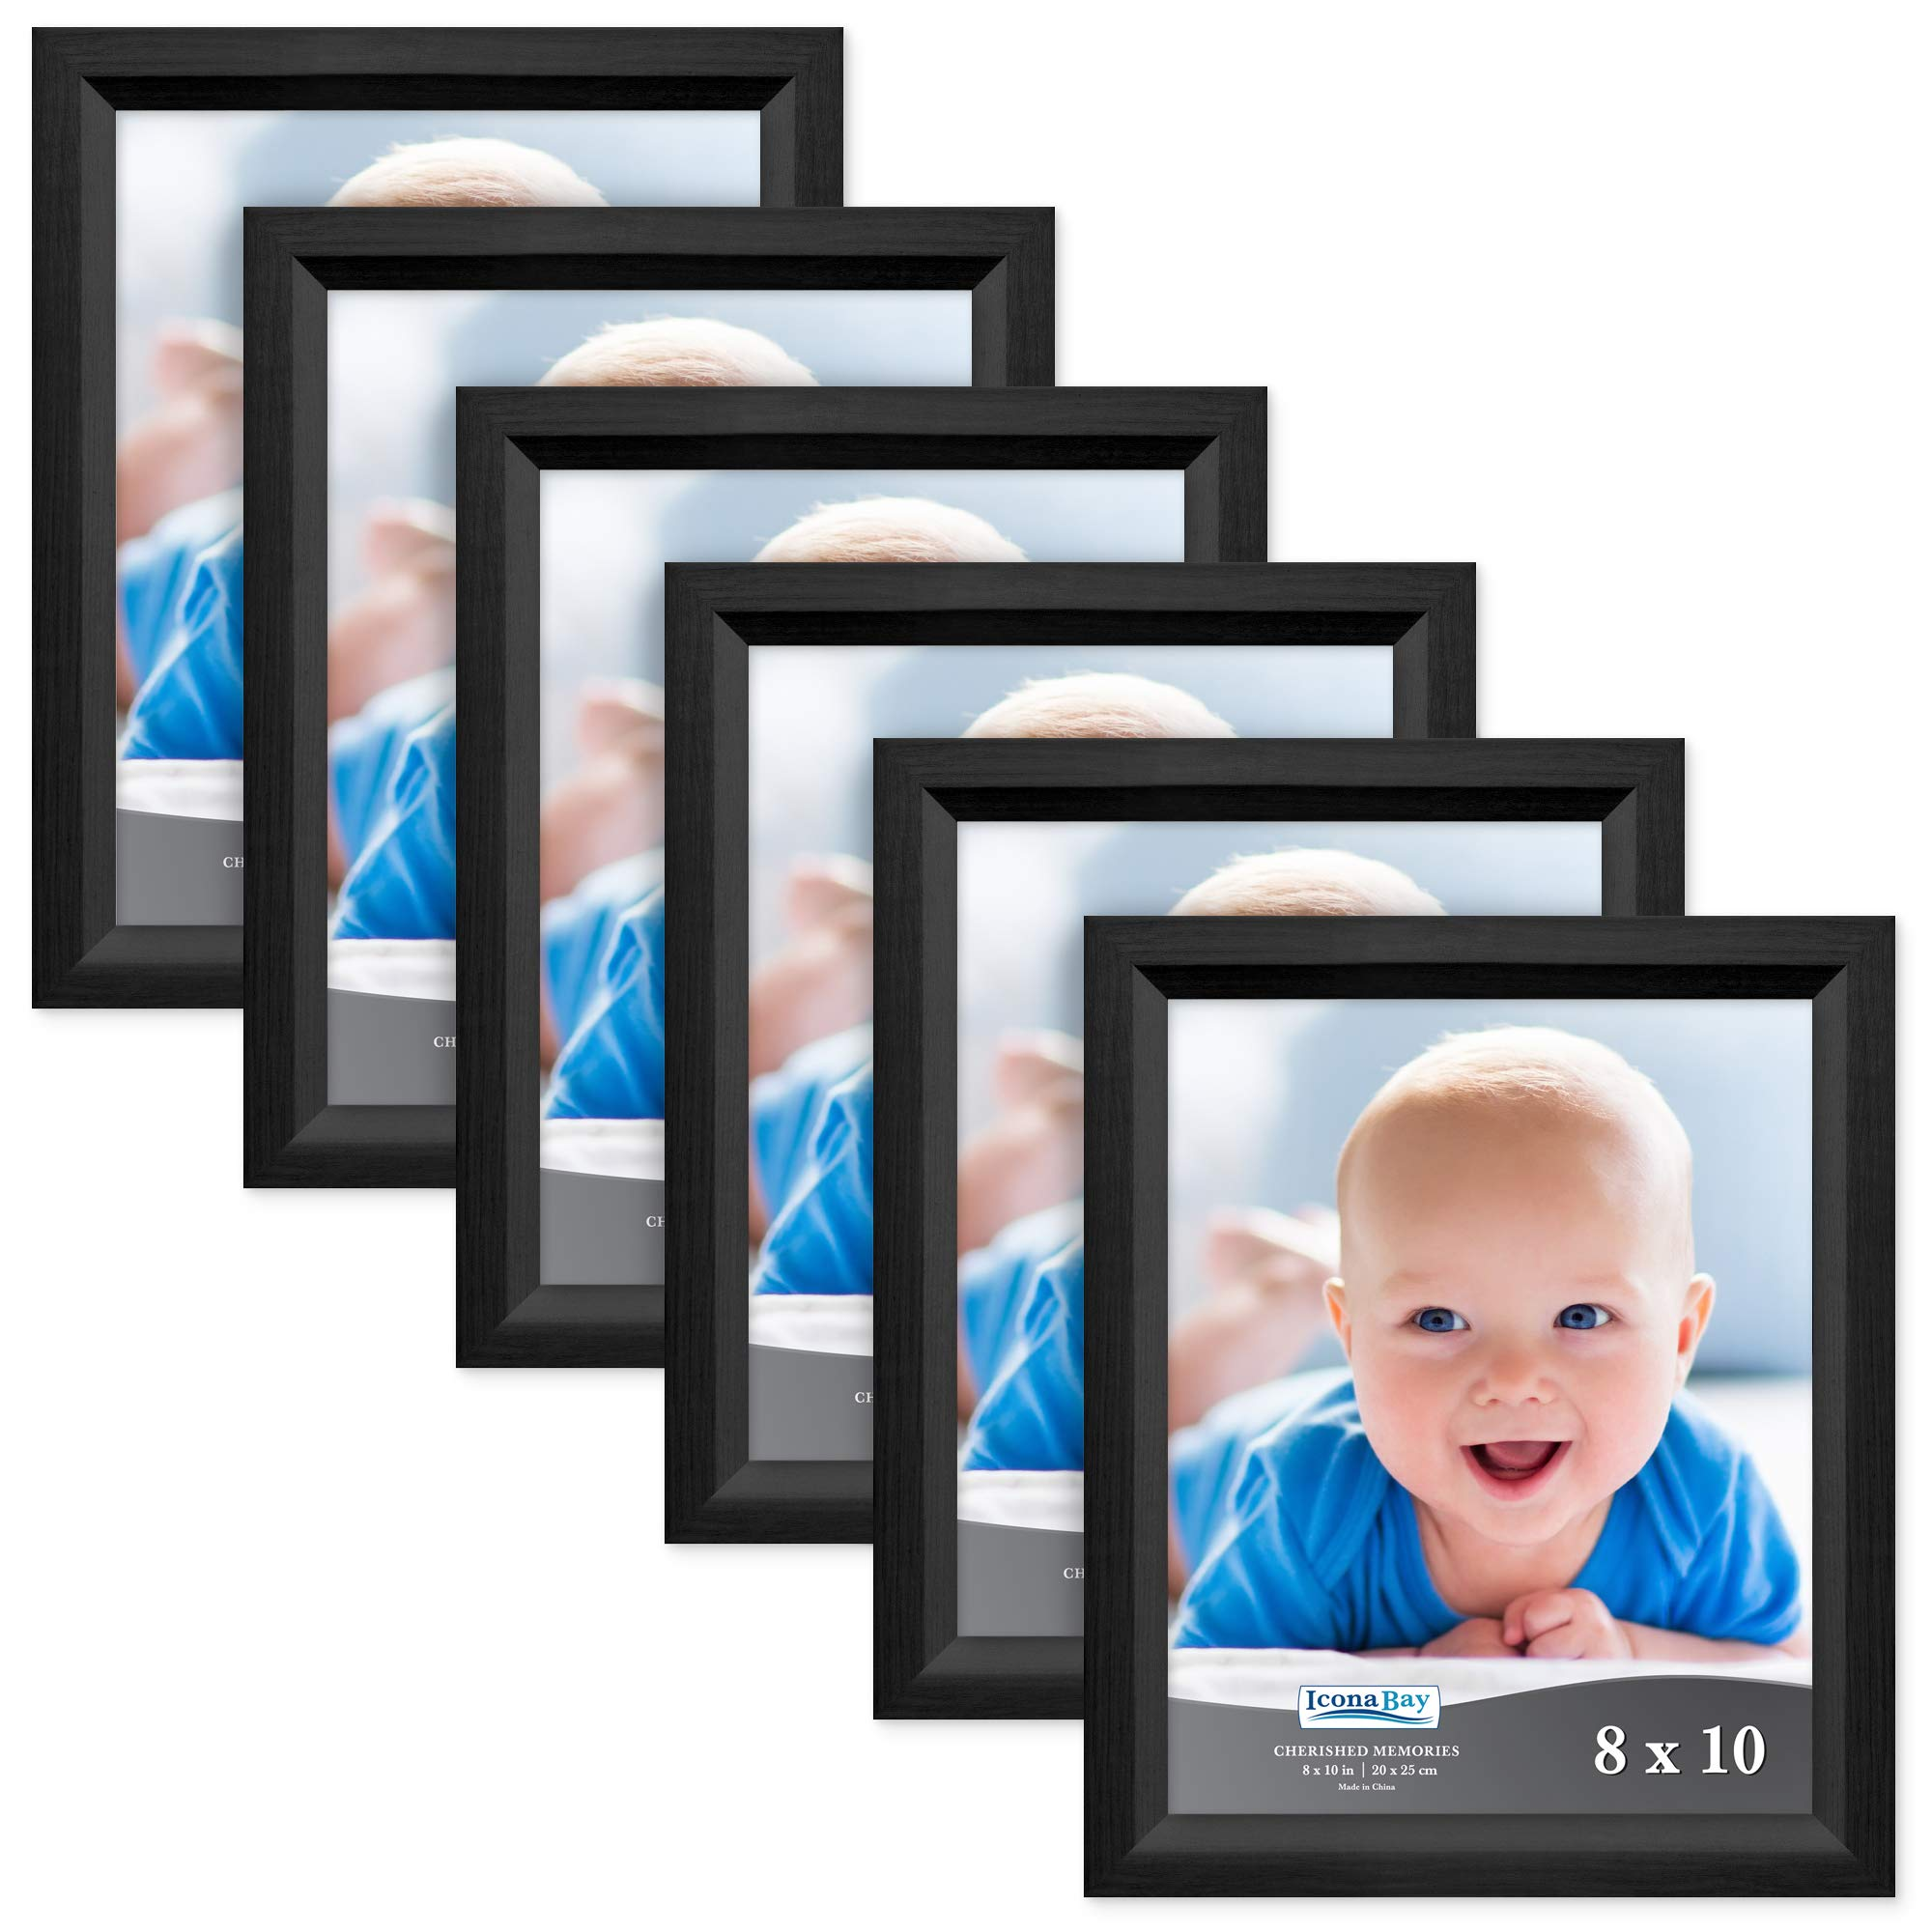 Icona Bay 8x10 Picture Frame (6 Pack, Obsidian Black Wood Finish), Black Photo Frame 8 x 10, Composite Wood Frame for Walls or Tables, Set of 6 Cherished Memories Collection by Icona Bay